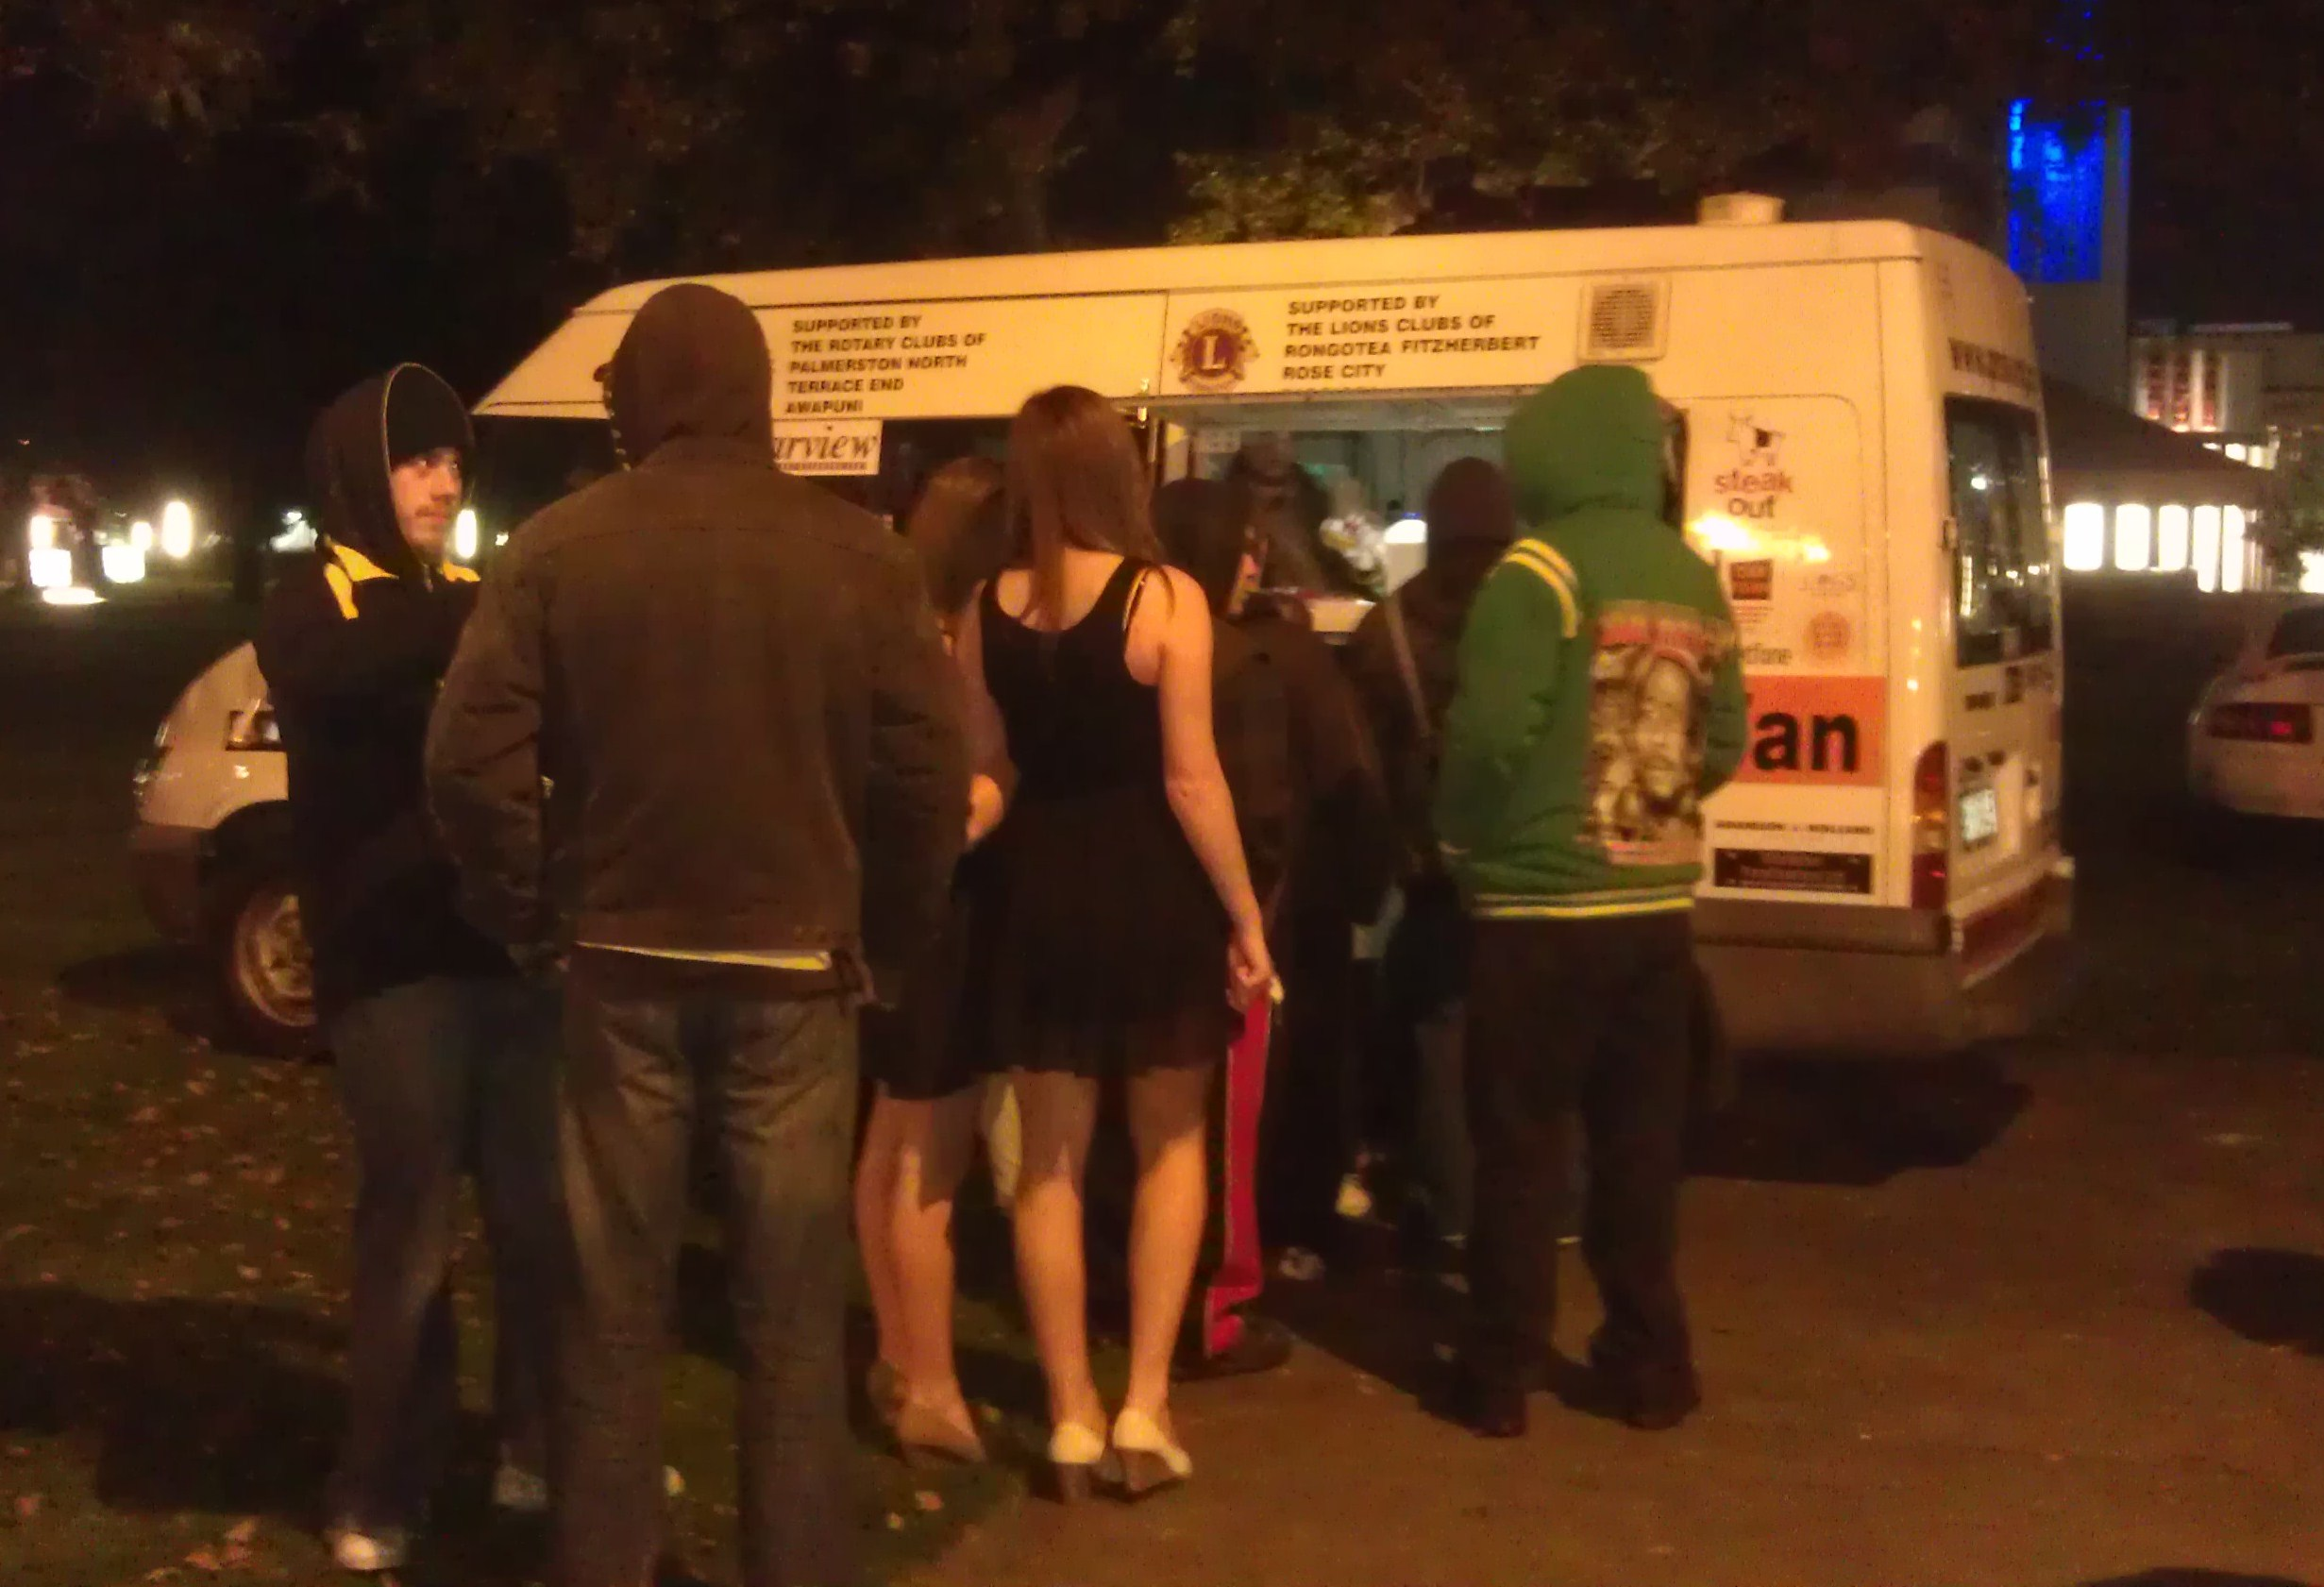 Street Van giving out food during weekends at night